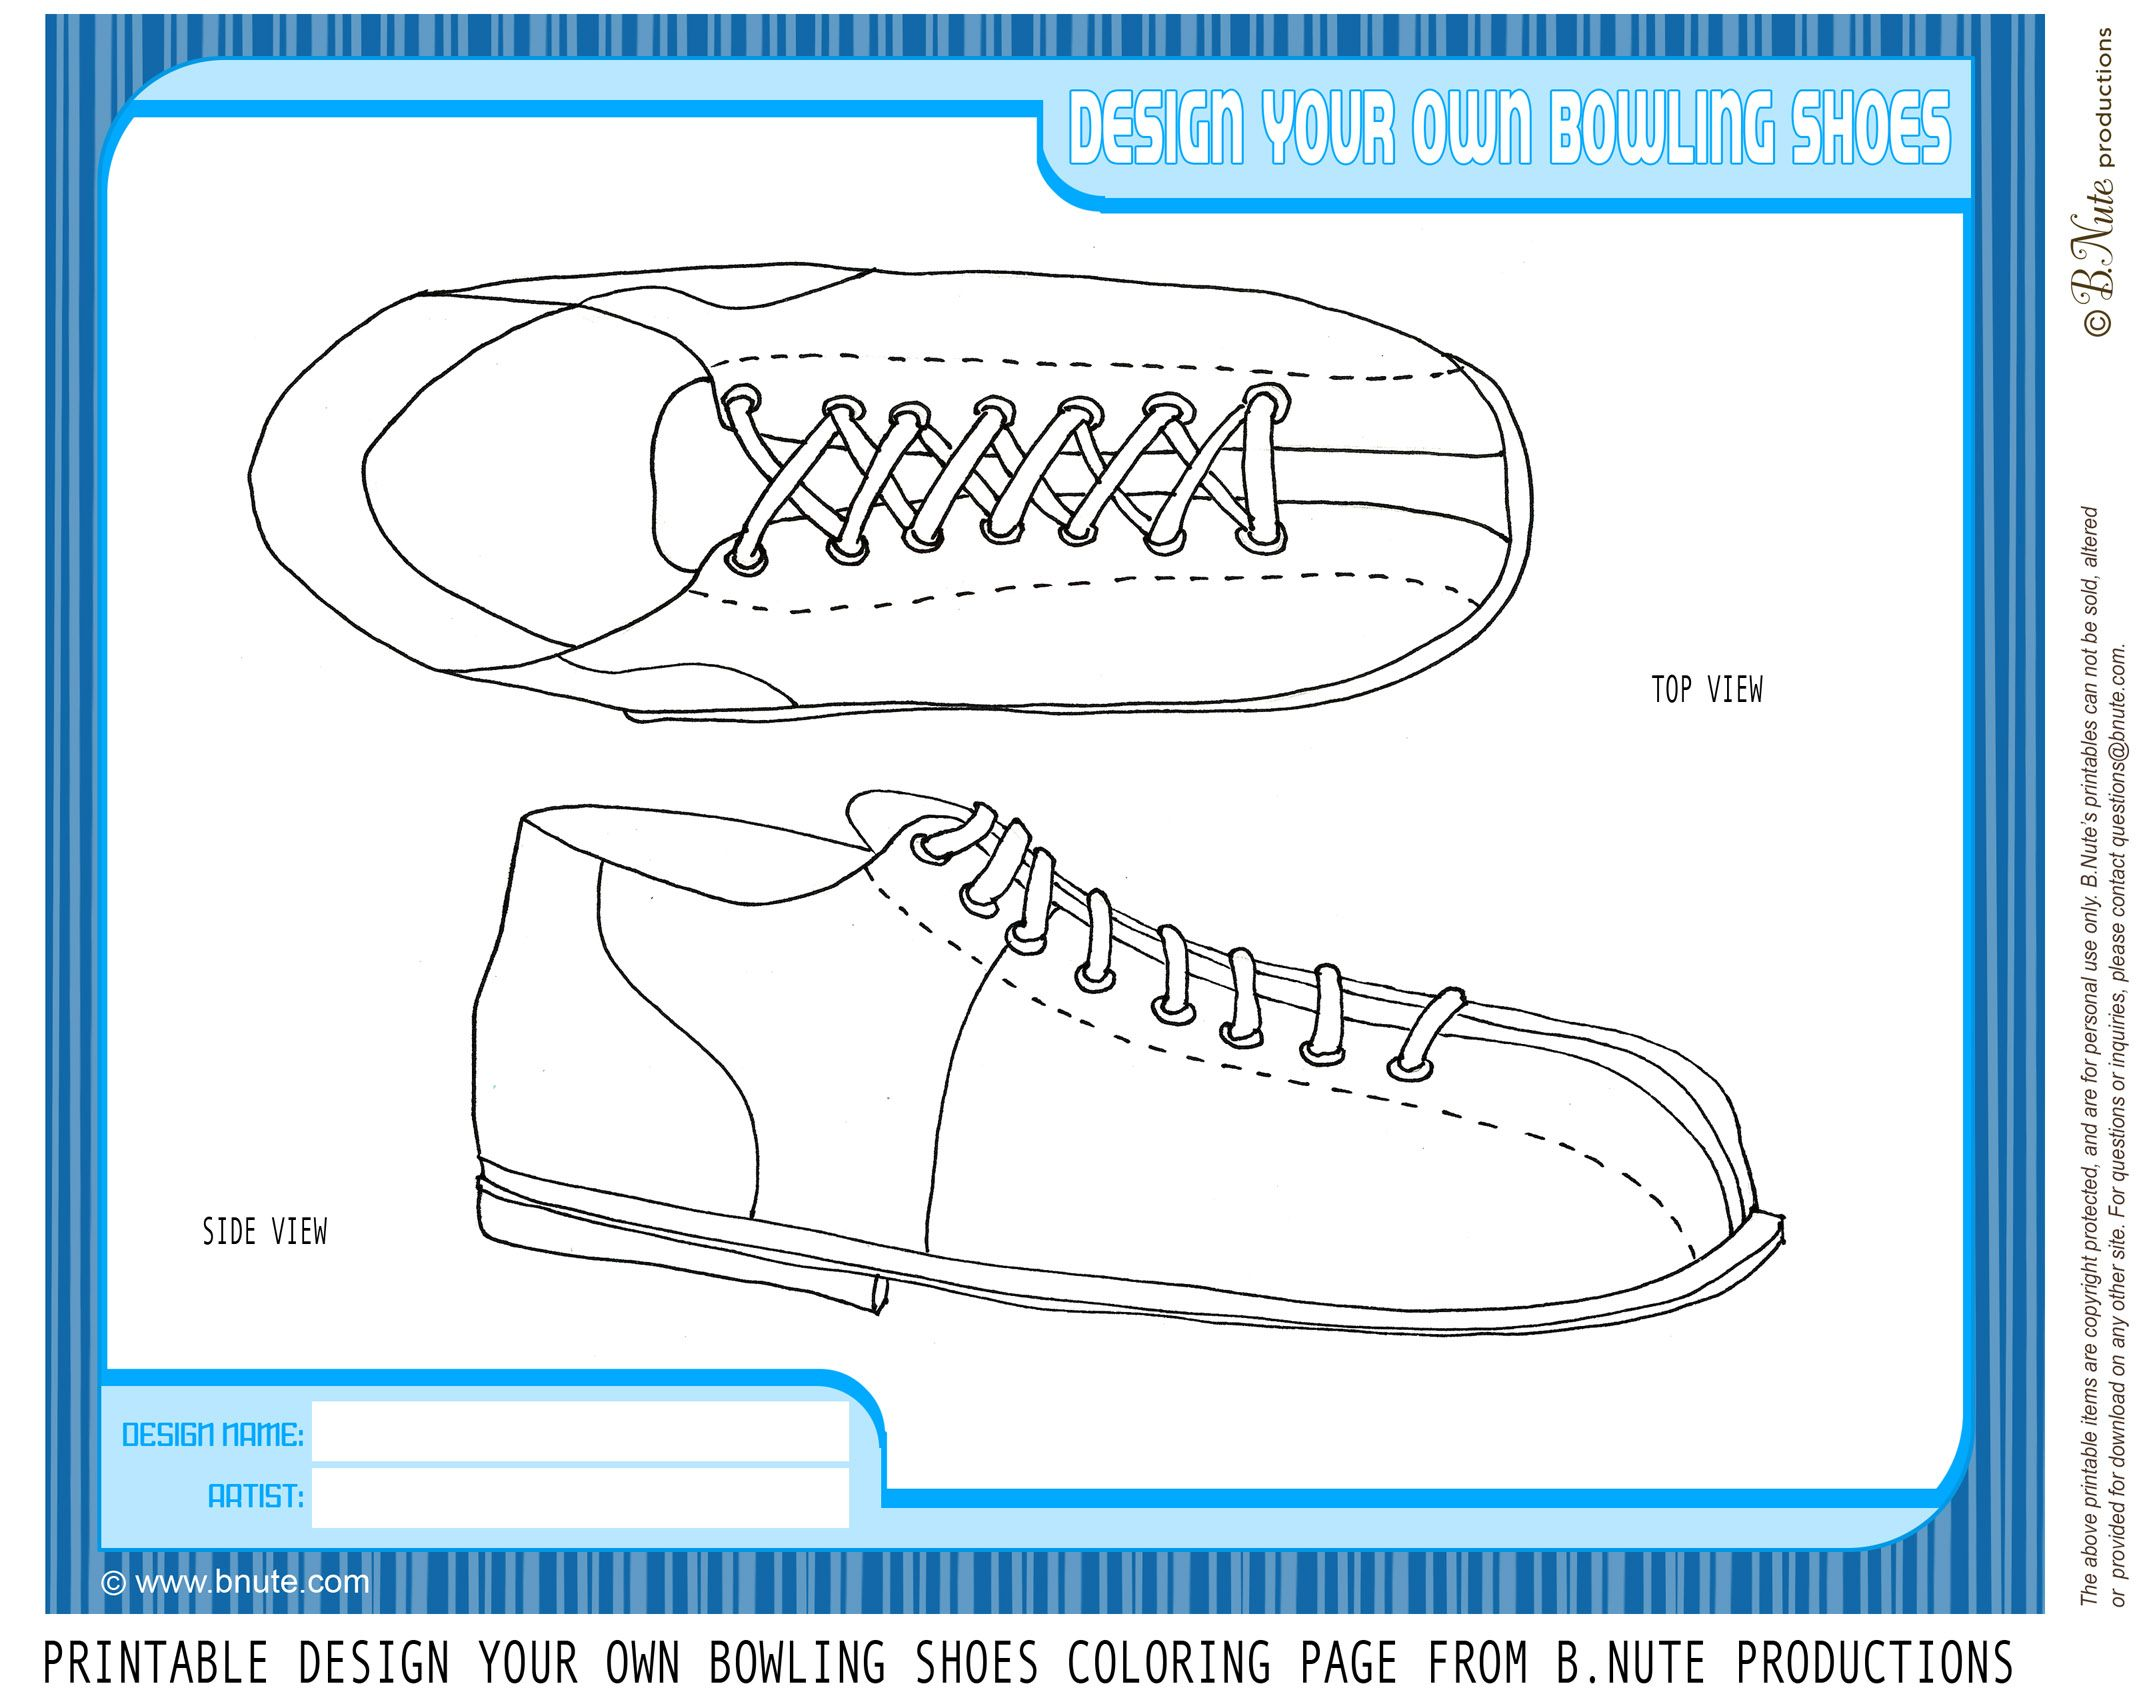 Bnute Productions Free Printable Coloring Page Design Your Own Bowling Shoes